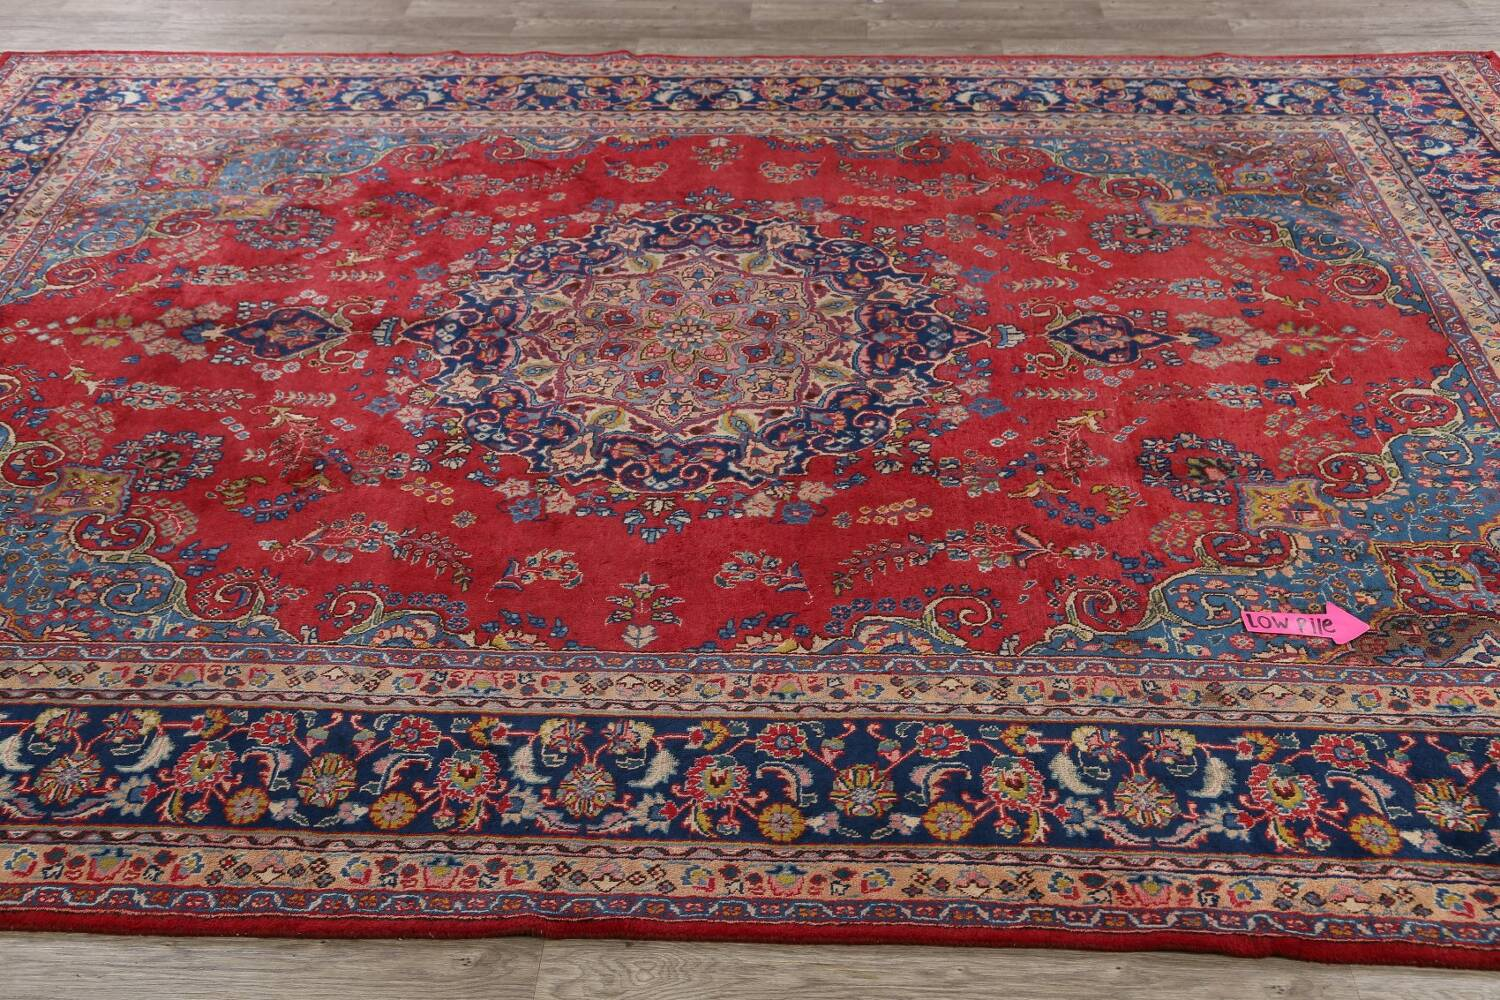 Vintage Floral Red Mashad Persian Area Rug 9x13 image 14